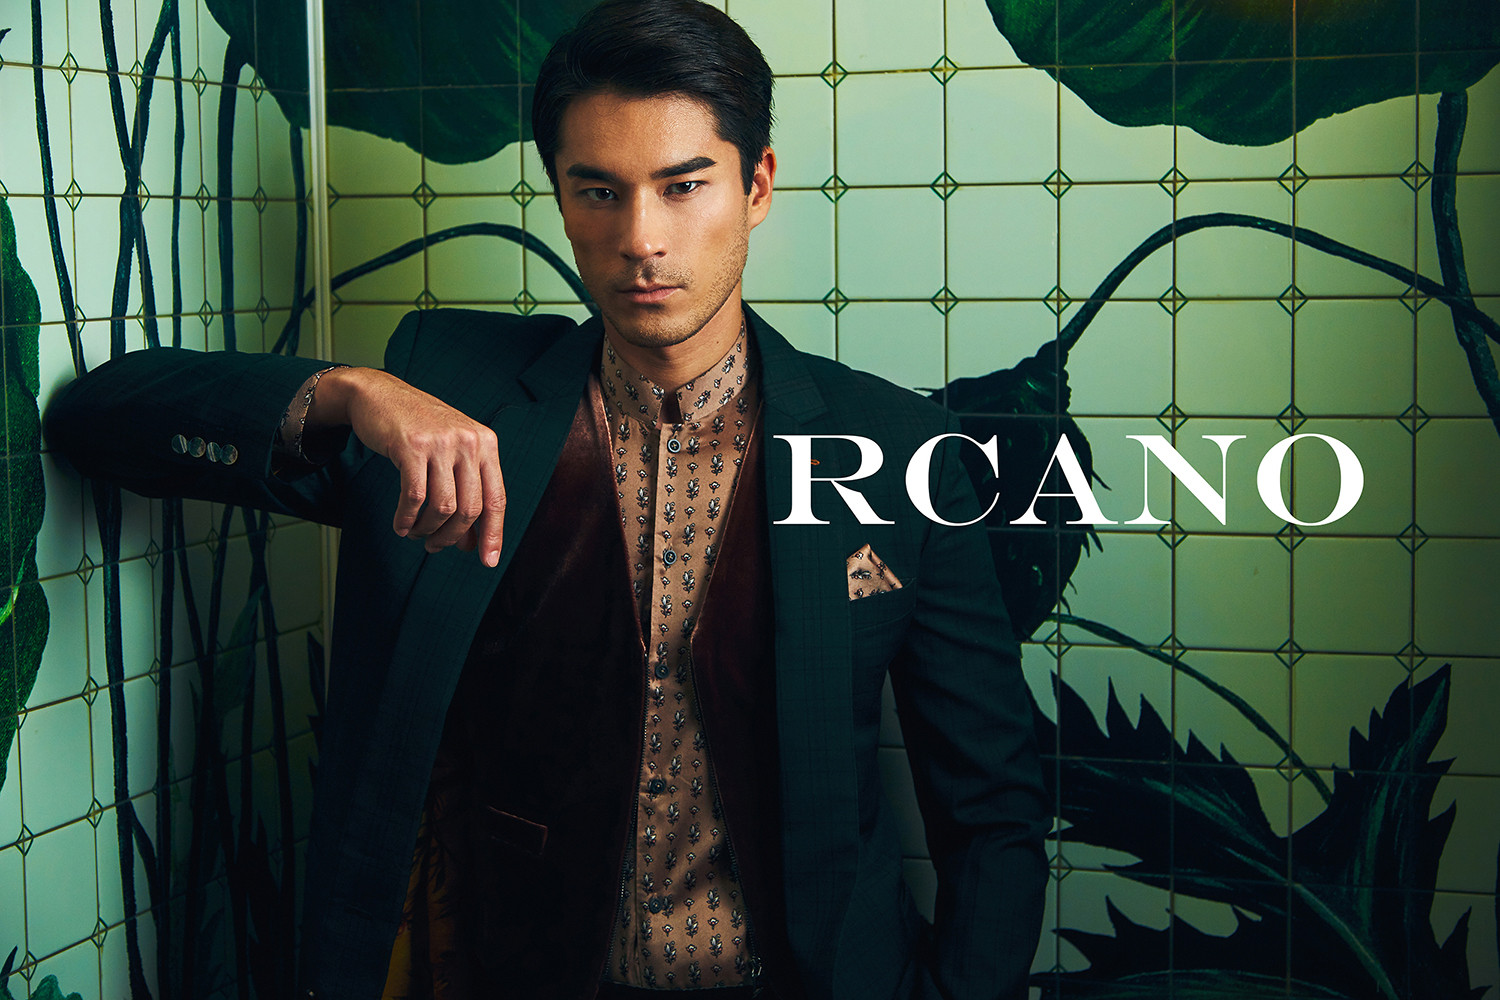 RCANO_FW19 CAMPAIGN LOW-RES_LOGO_3.jpg